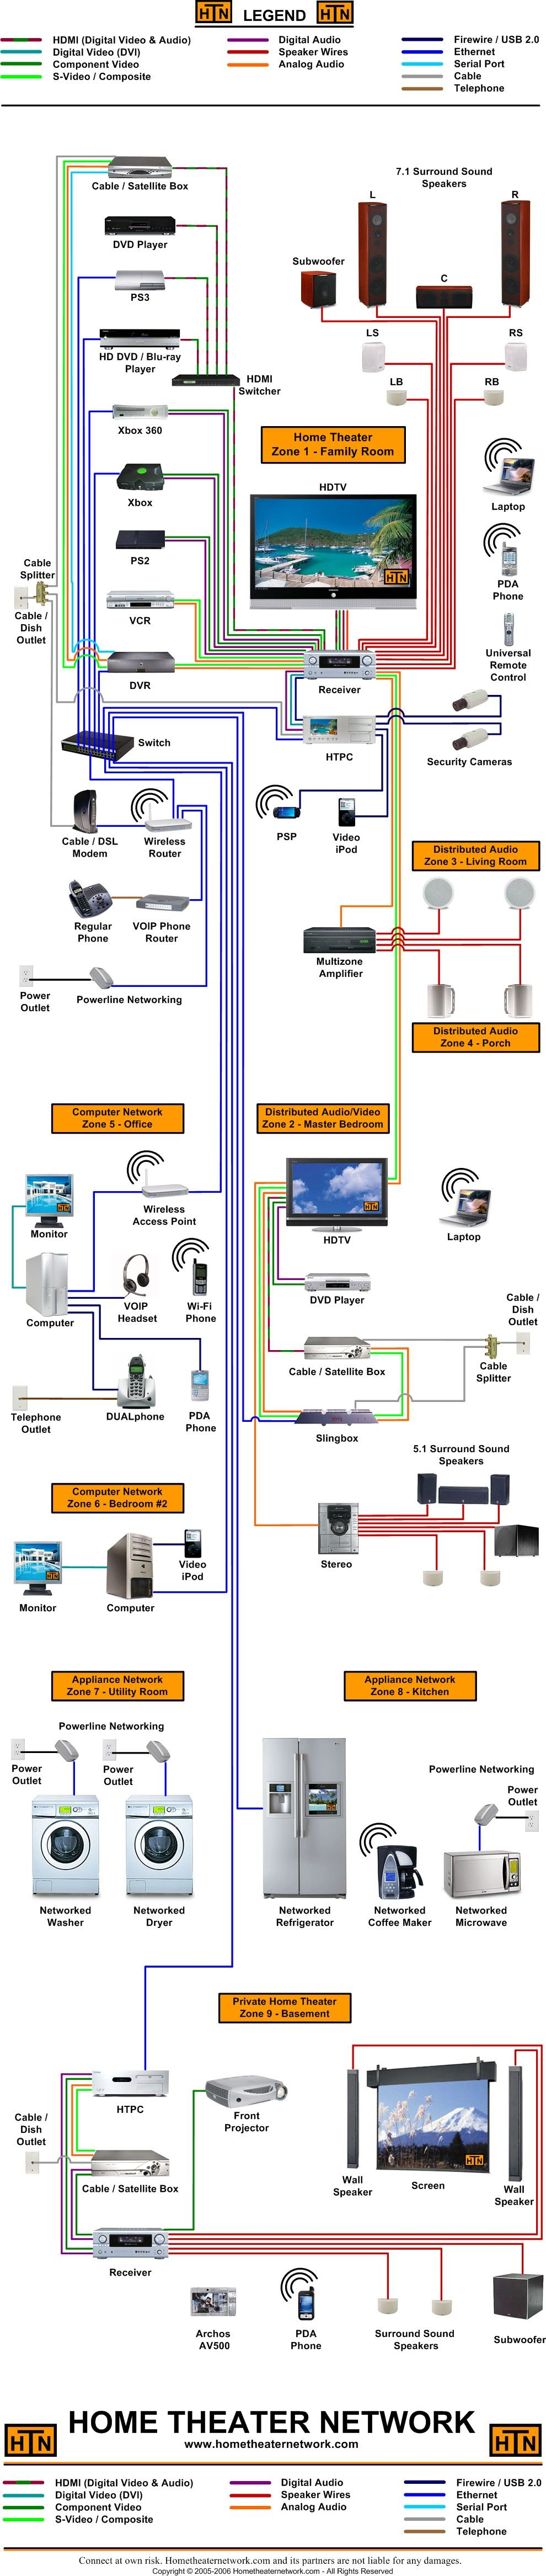 1f82225743b2dd8c34112b61e05b3406 best 25 home theater wiring ideas on pinterest home theater home cinema wiring diagram at gsmx.co